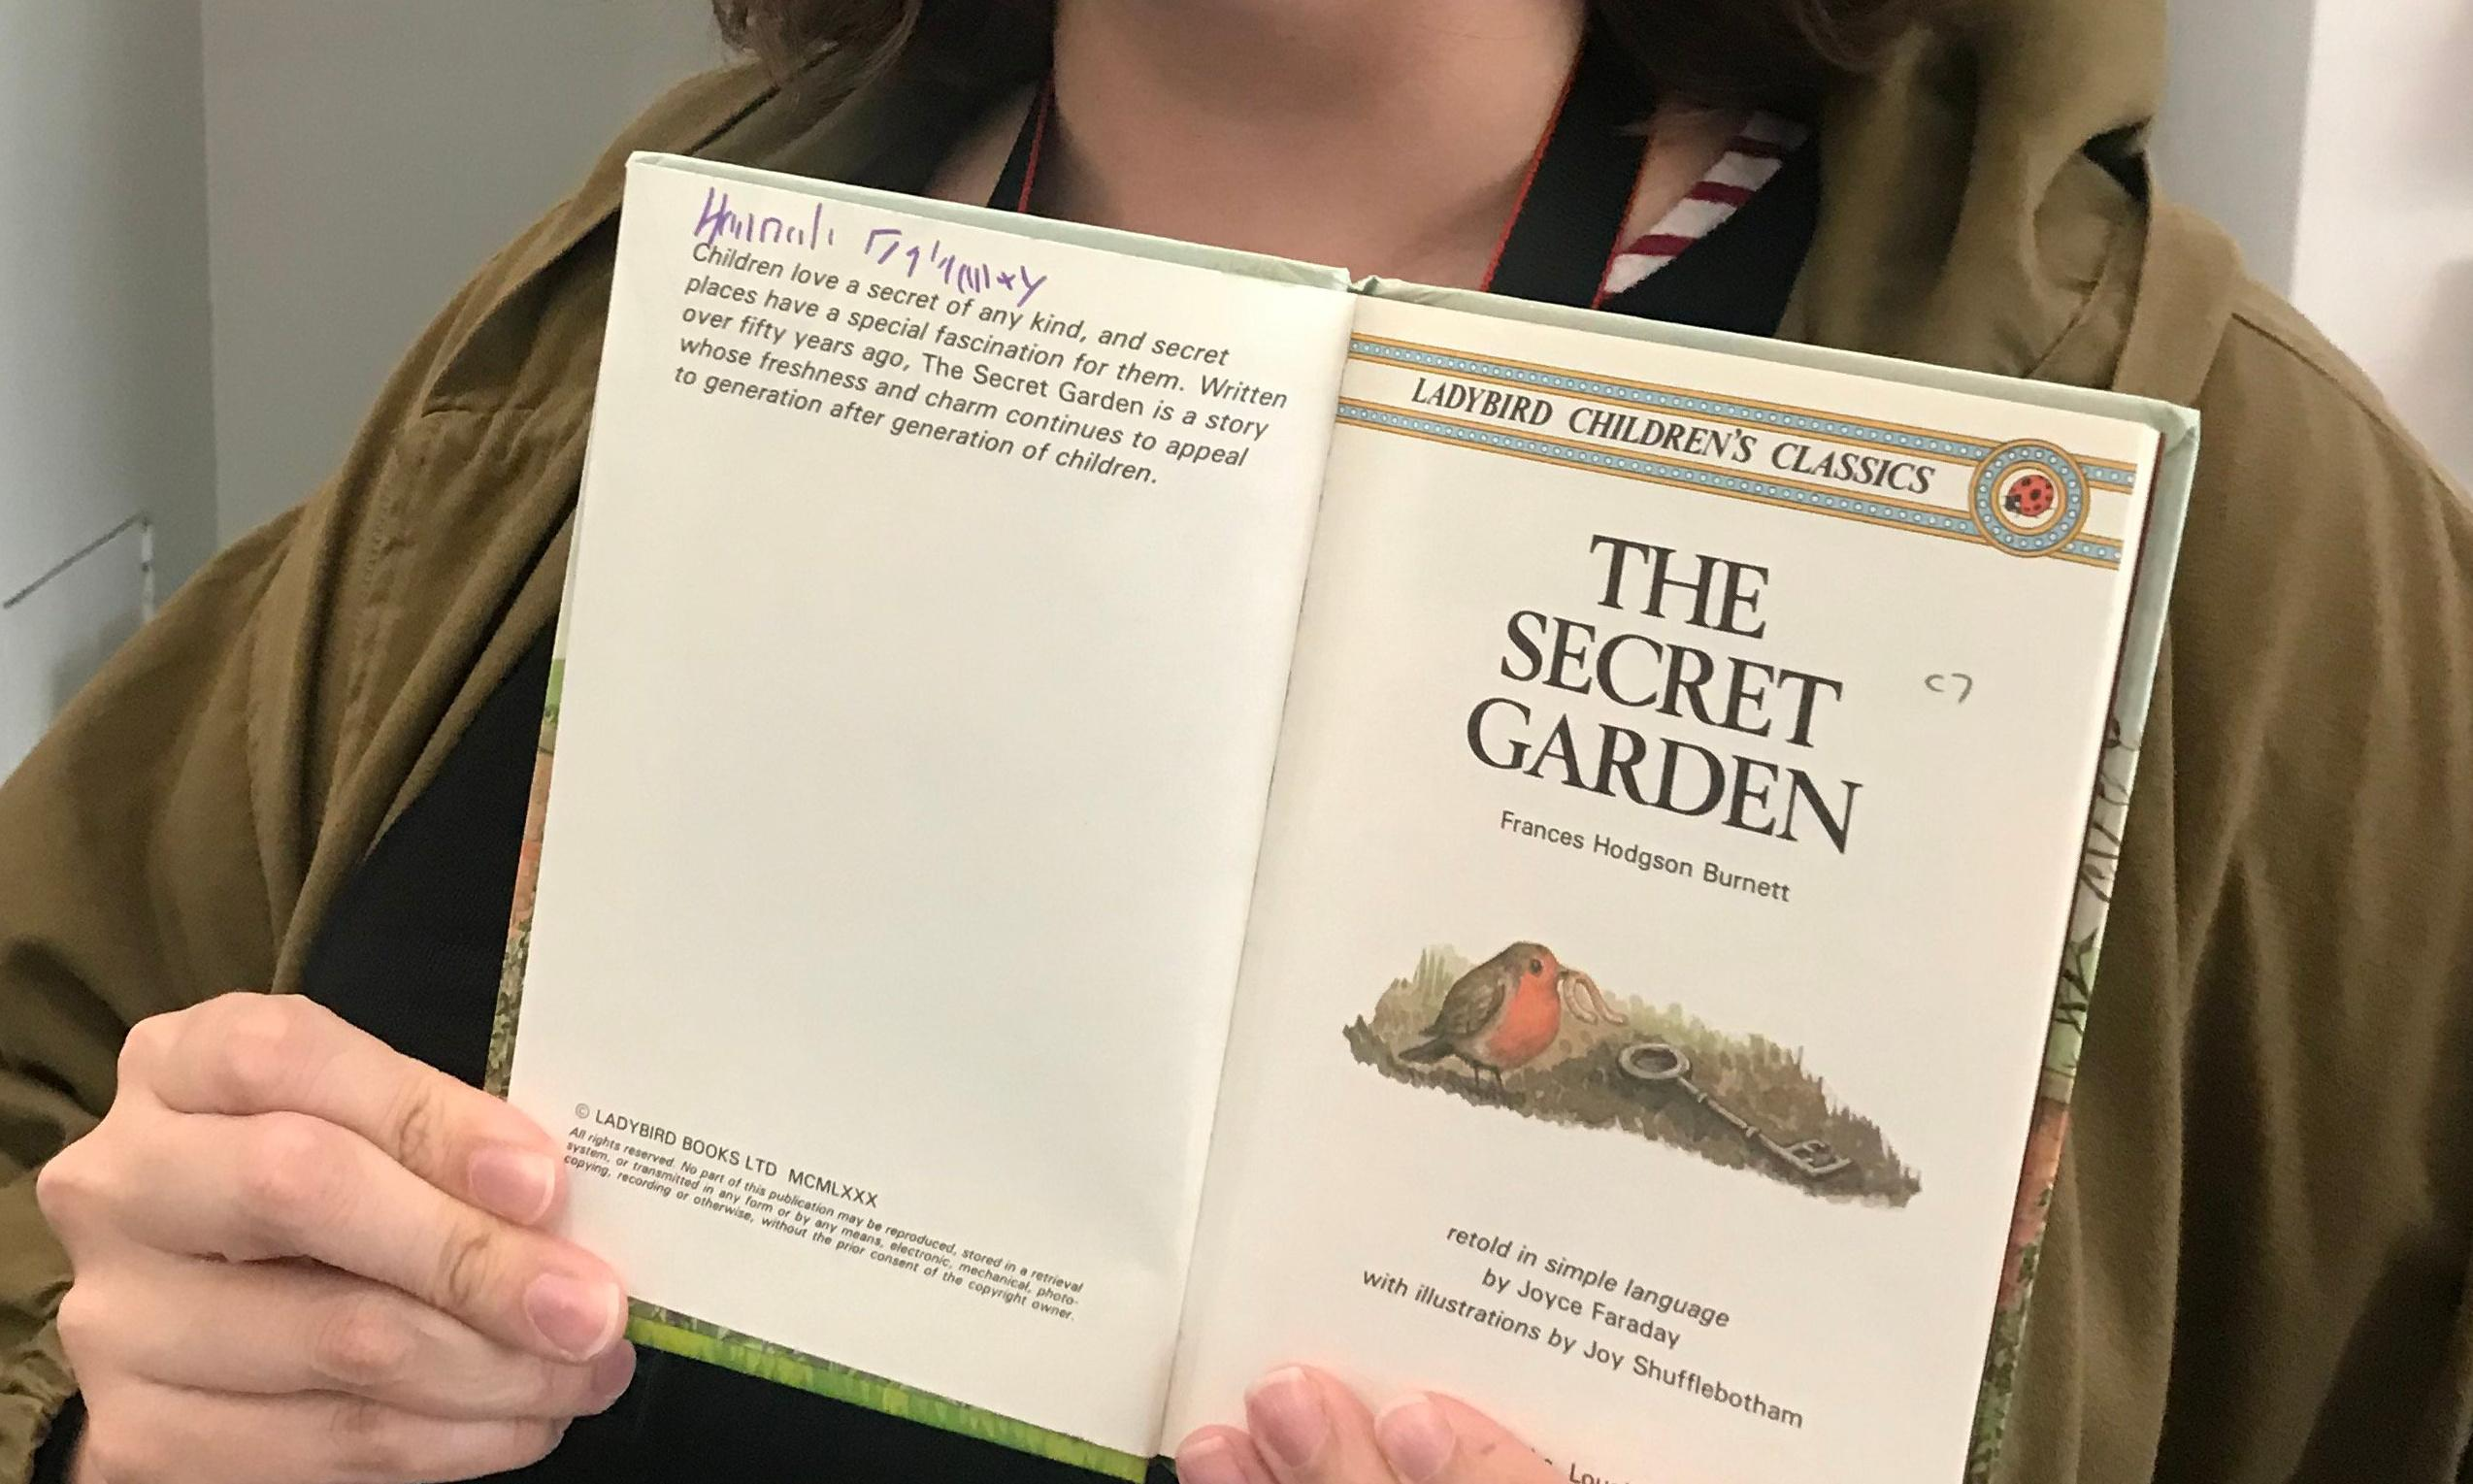 'Only a quid': woman reunited with childhood book in museum shop